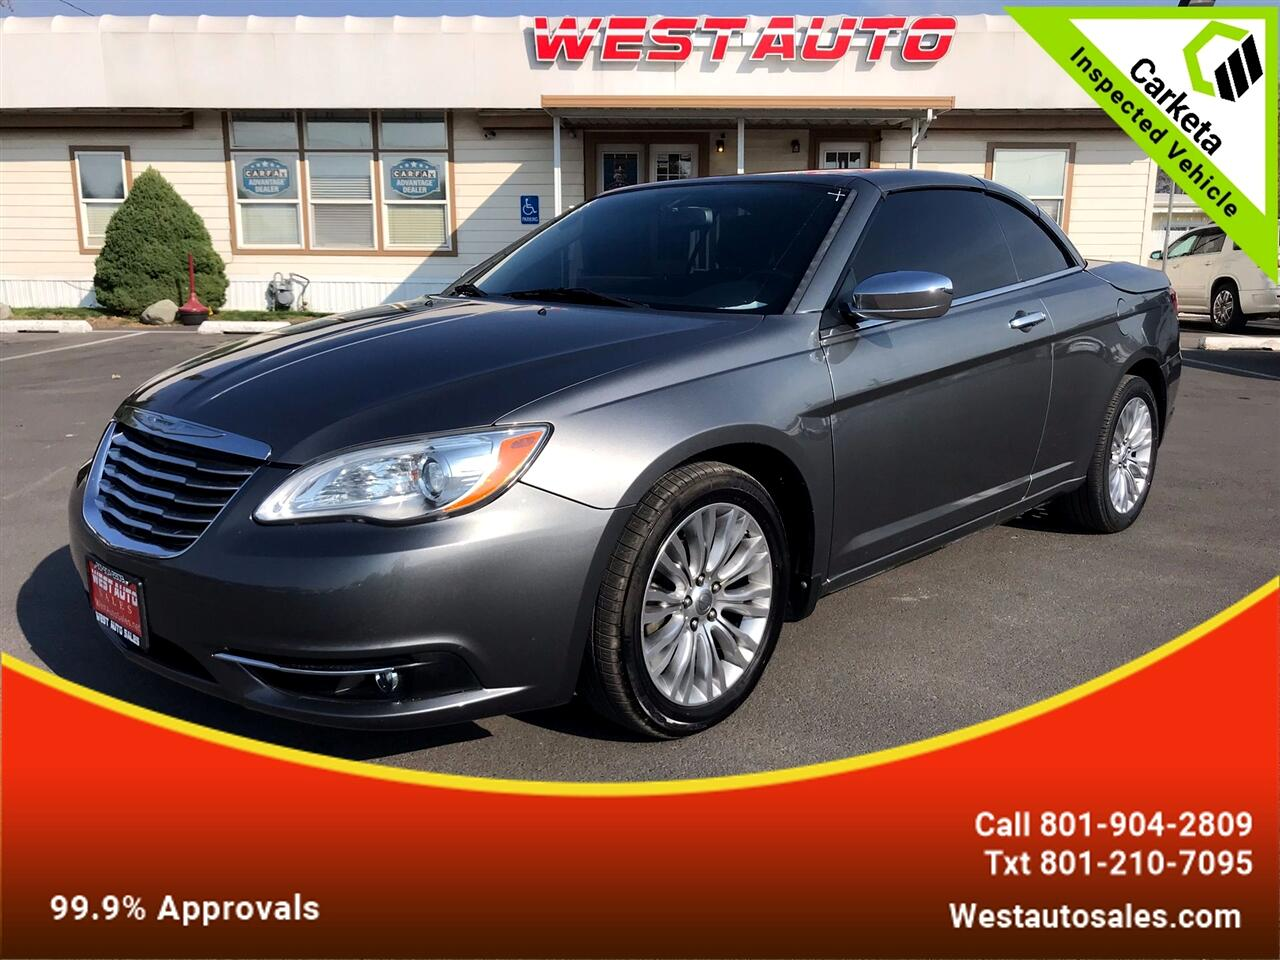 used car inventory in west valley city west auto sales west auto sales